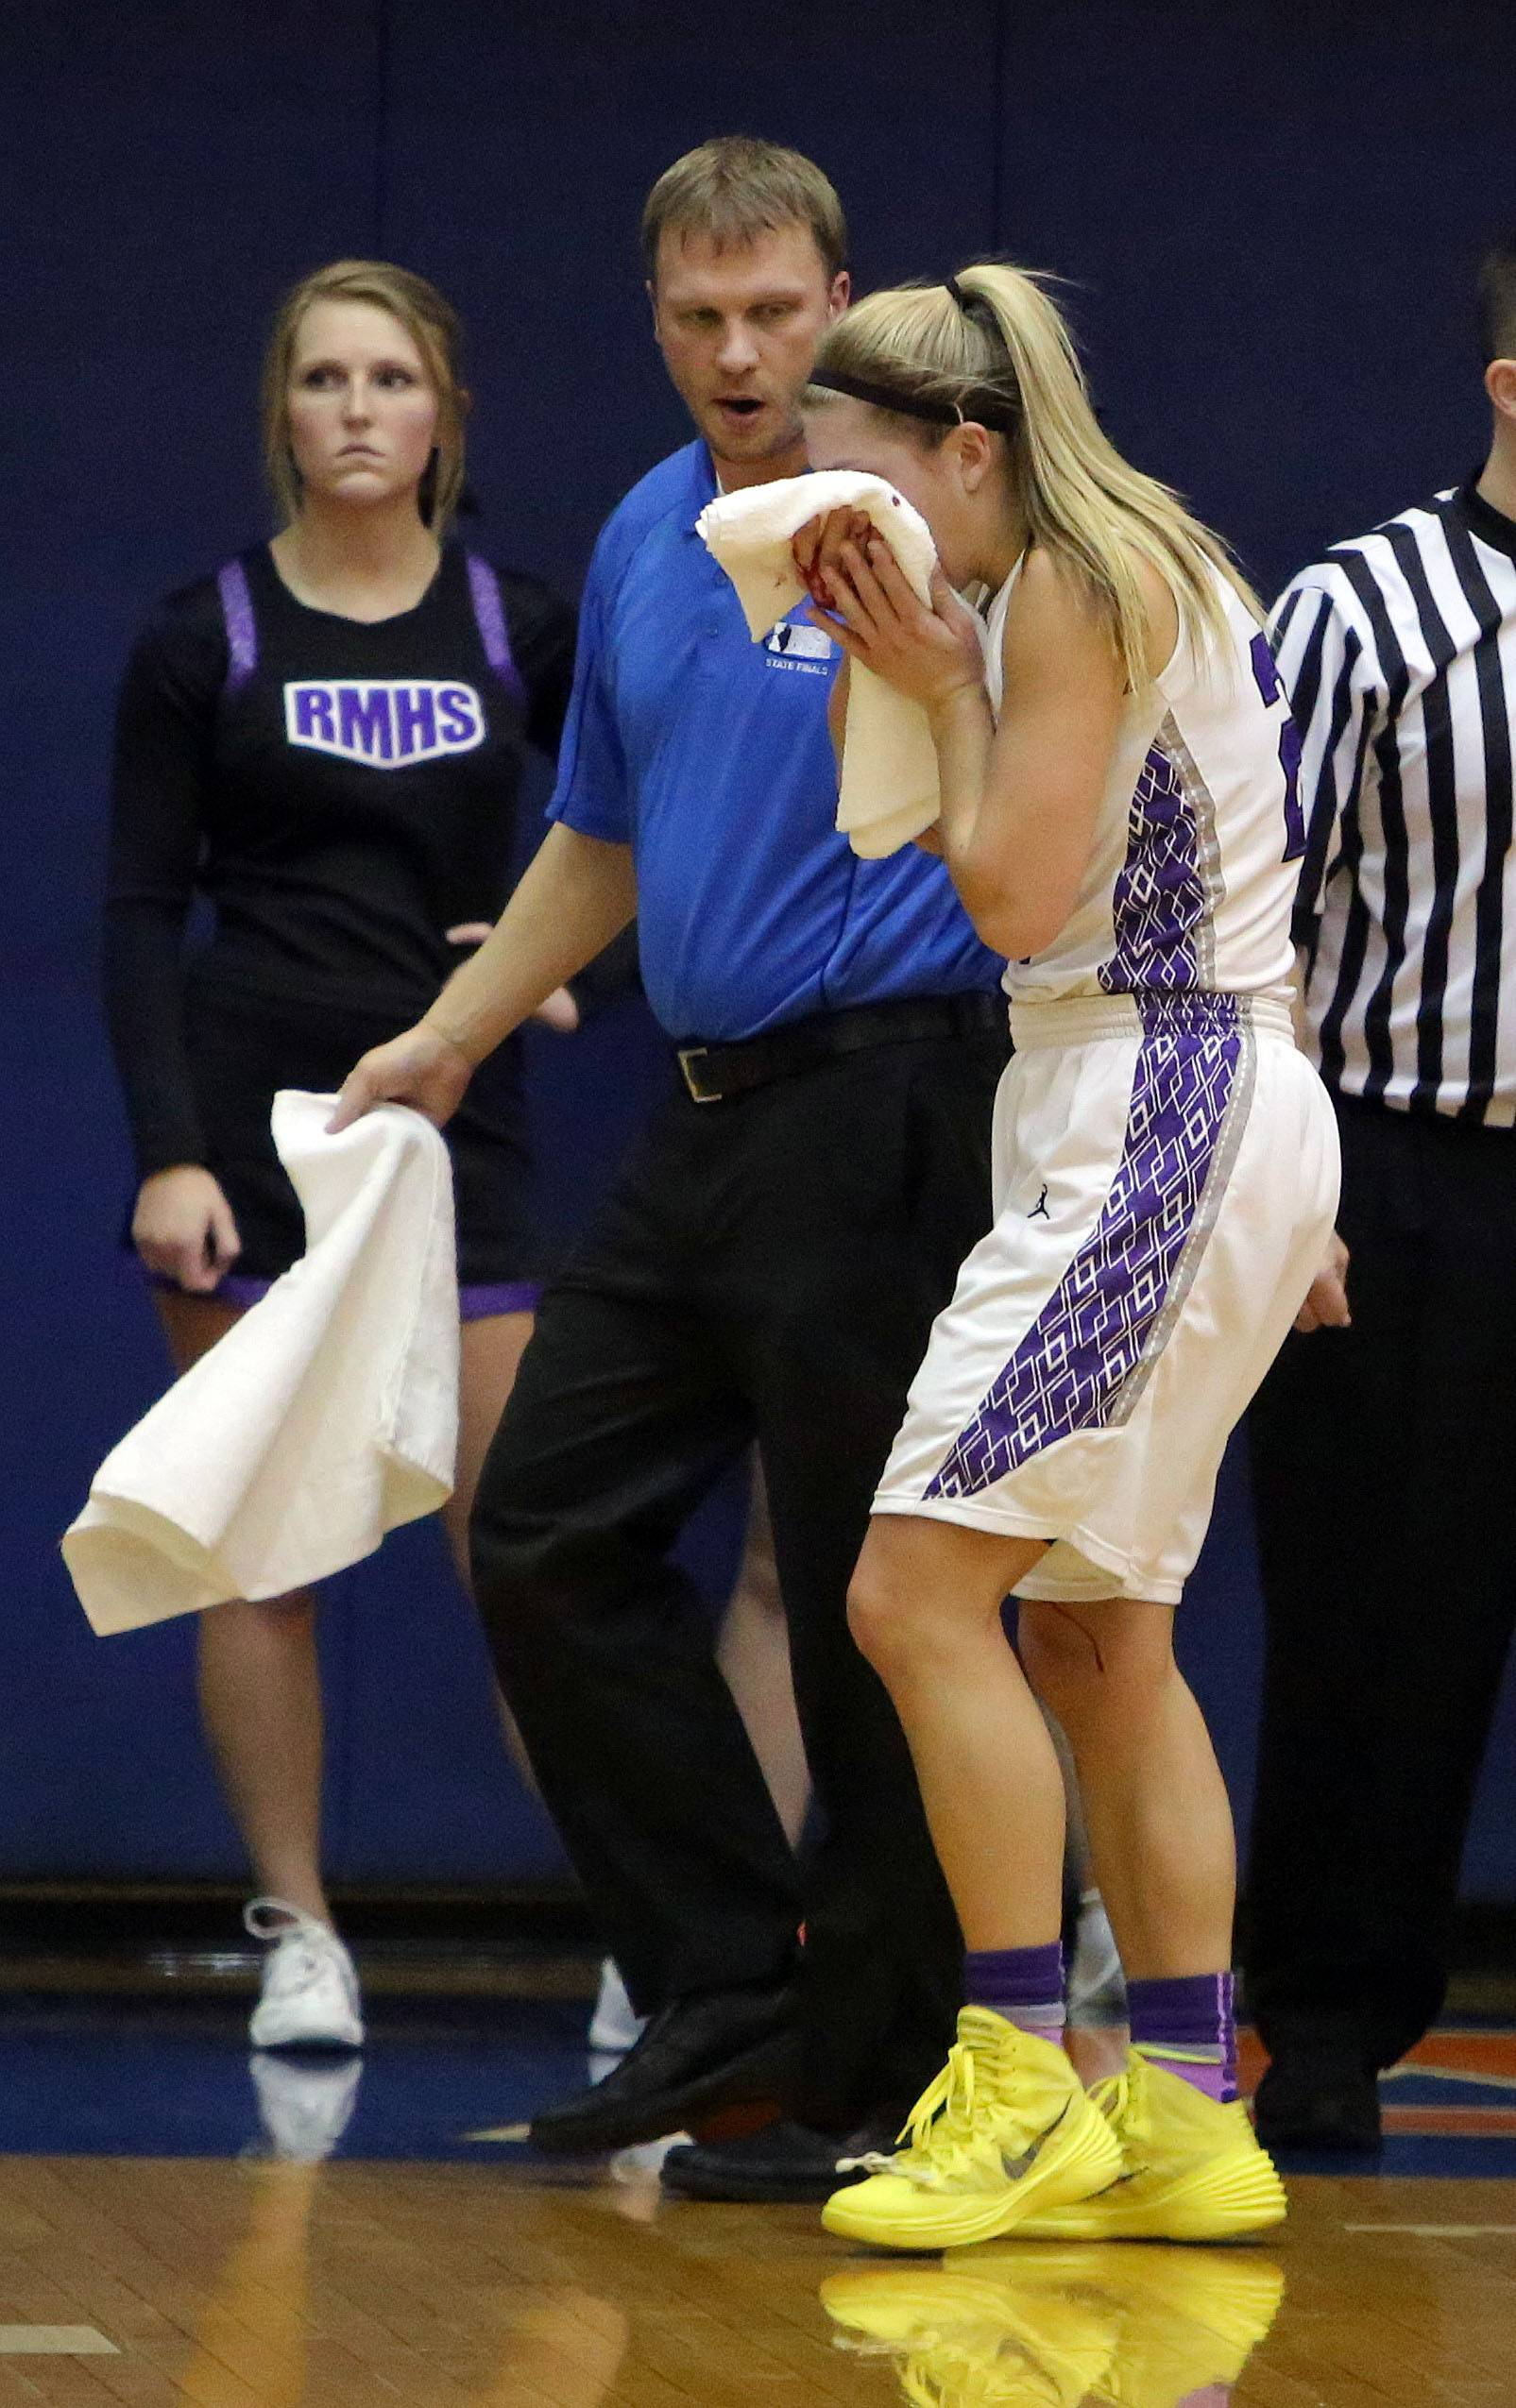 Rolling Meadows' Alexis Glasgow is taken off the court after getting elbowed by a New Trier player during the Class 4A supersectional at Hoffman Estates on Monday.